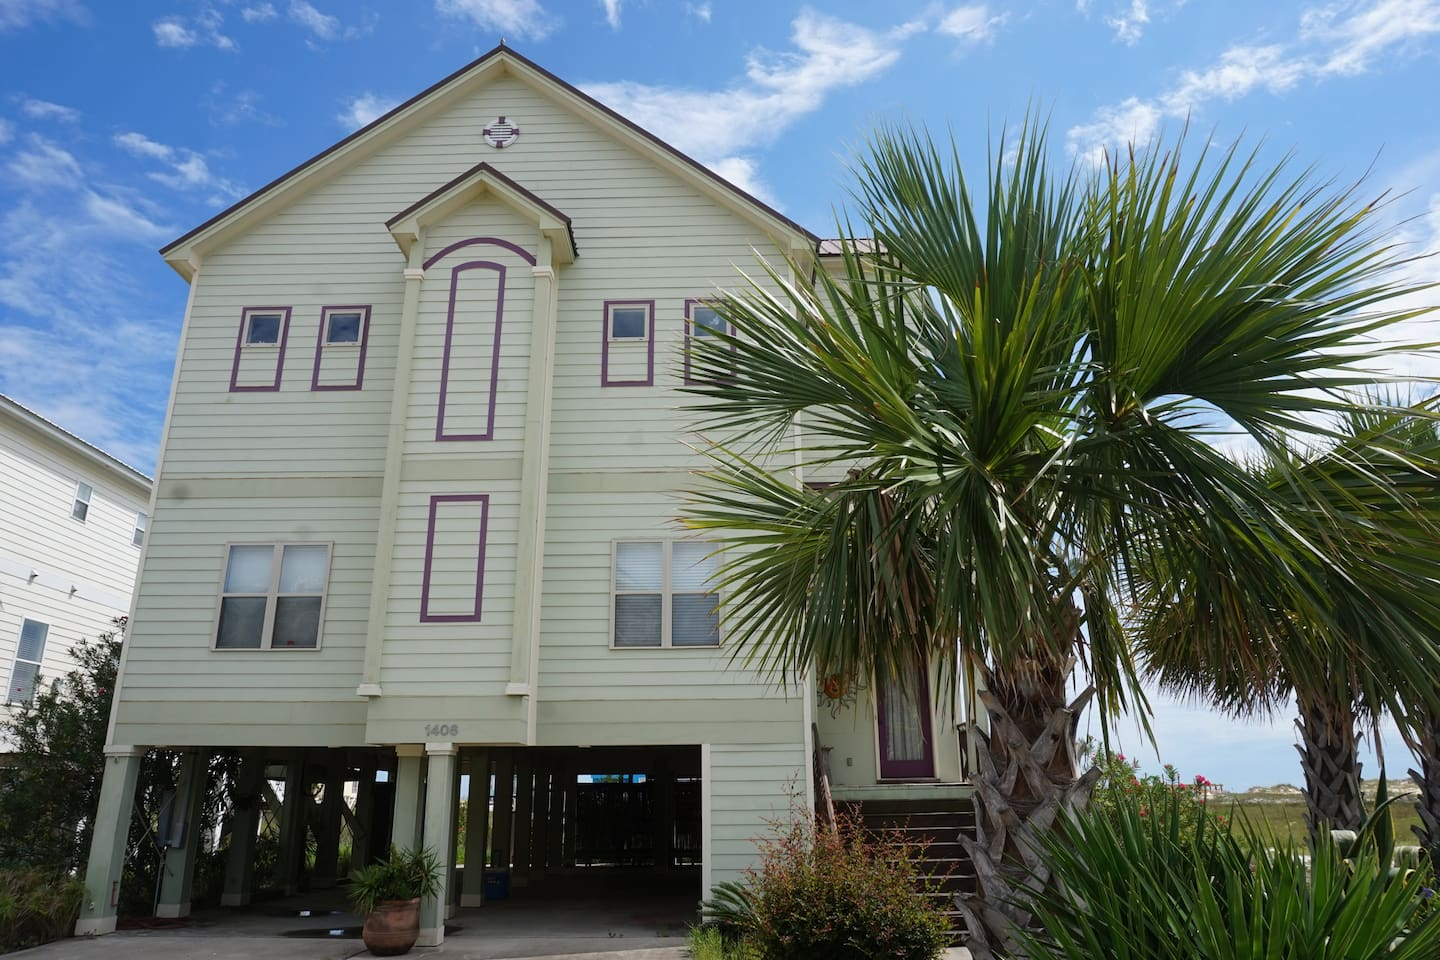 Outside View Of Our Three Story Vacation Home In Fort Morgan